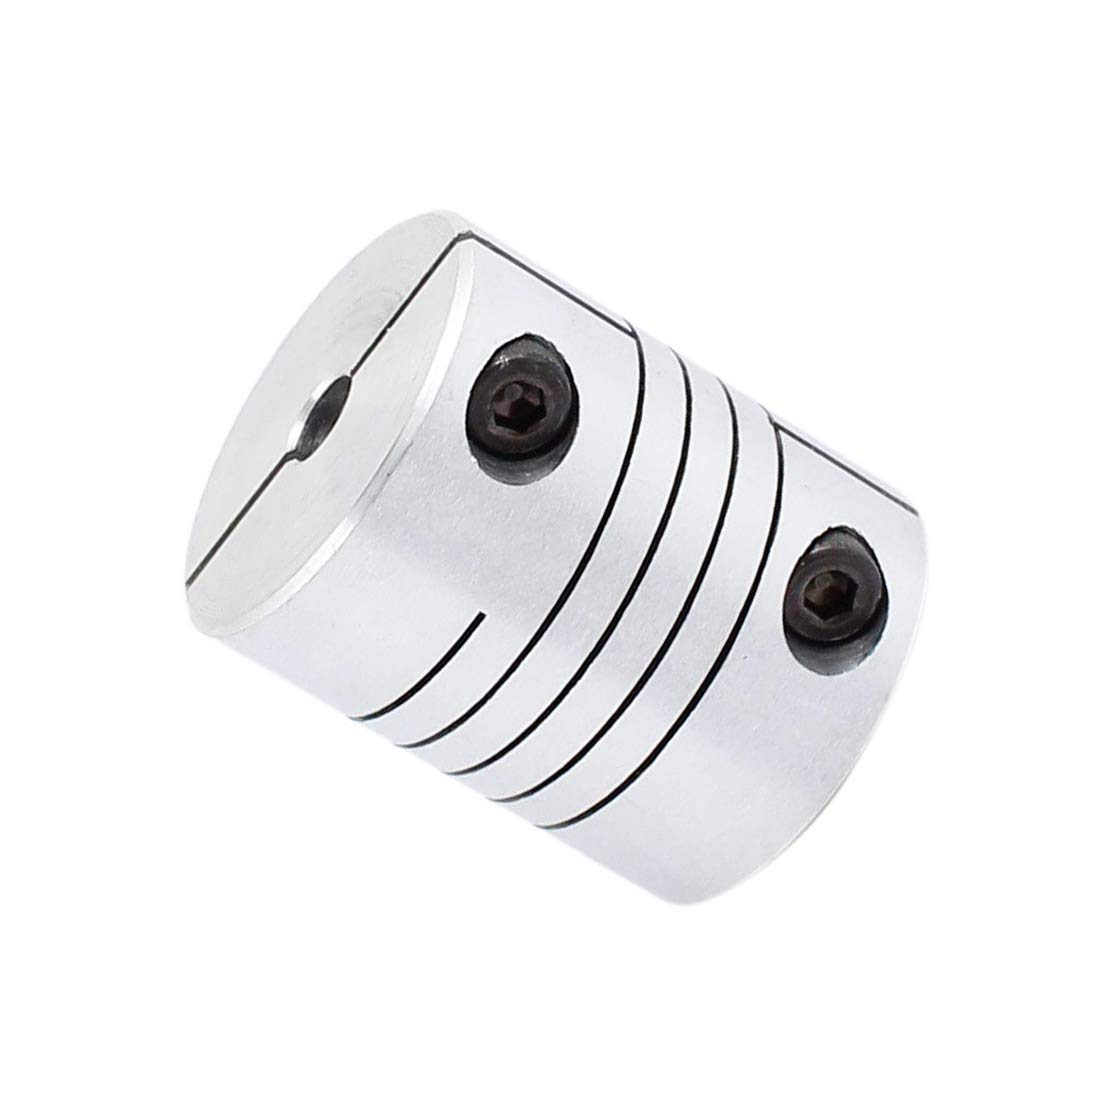 Rannb Clamp Style Aluminum Alloy Flexible Shaft Coupling Beam Coupling Motor Shaft Coupler - 5mm/0.2' to 10mm/0.39'